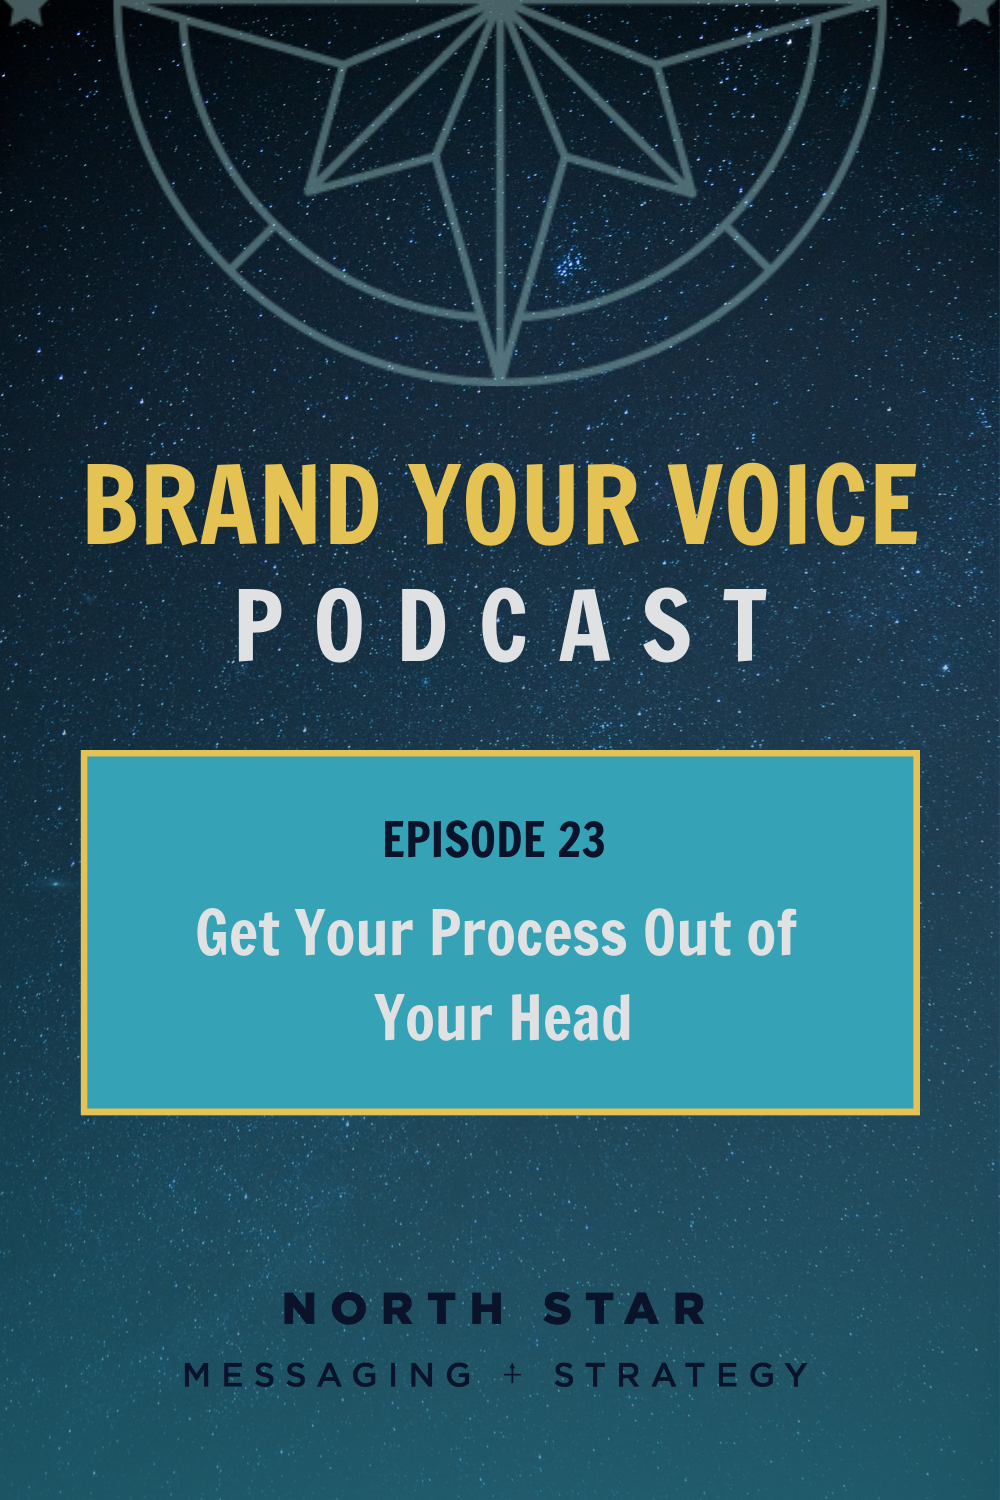 EPISODE 23: Get Your Process Out of Your Head